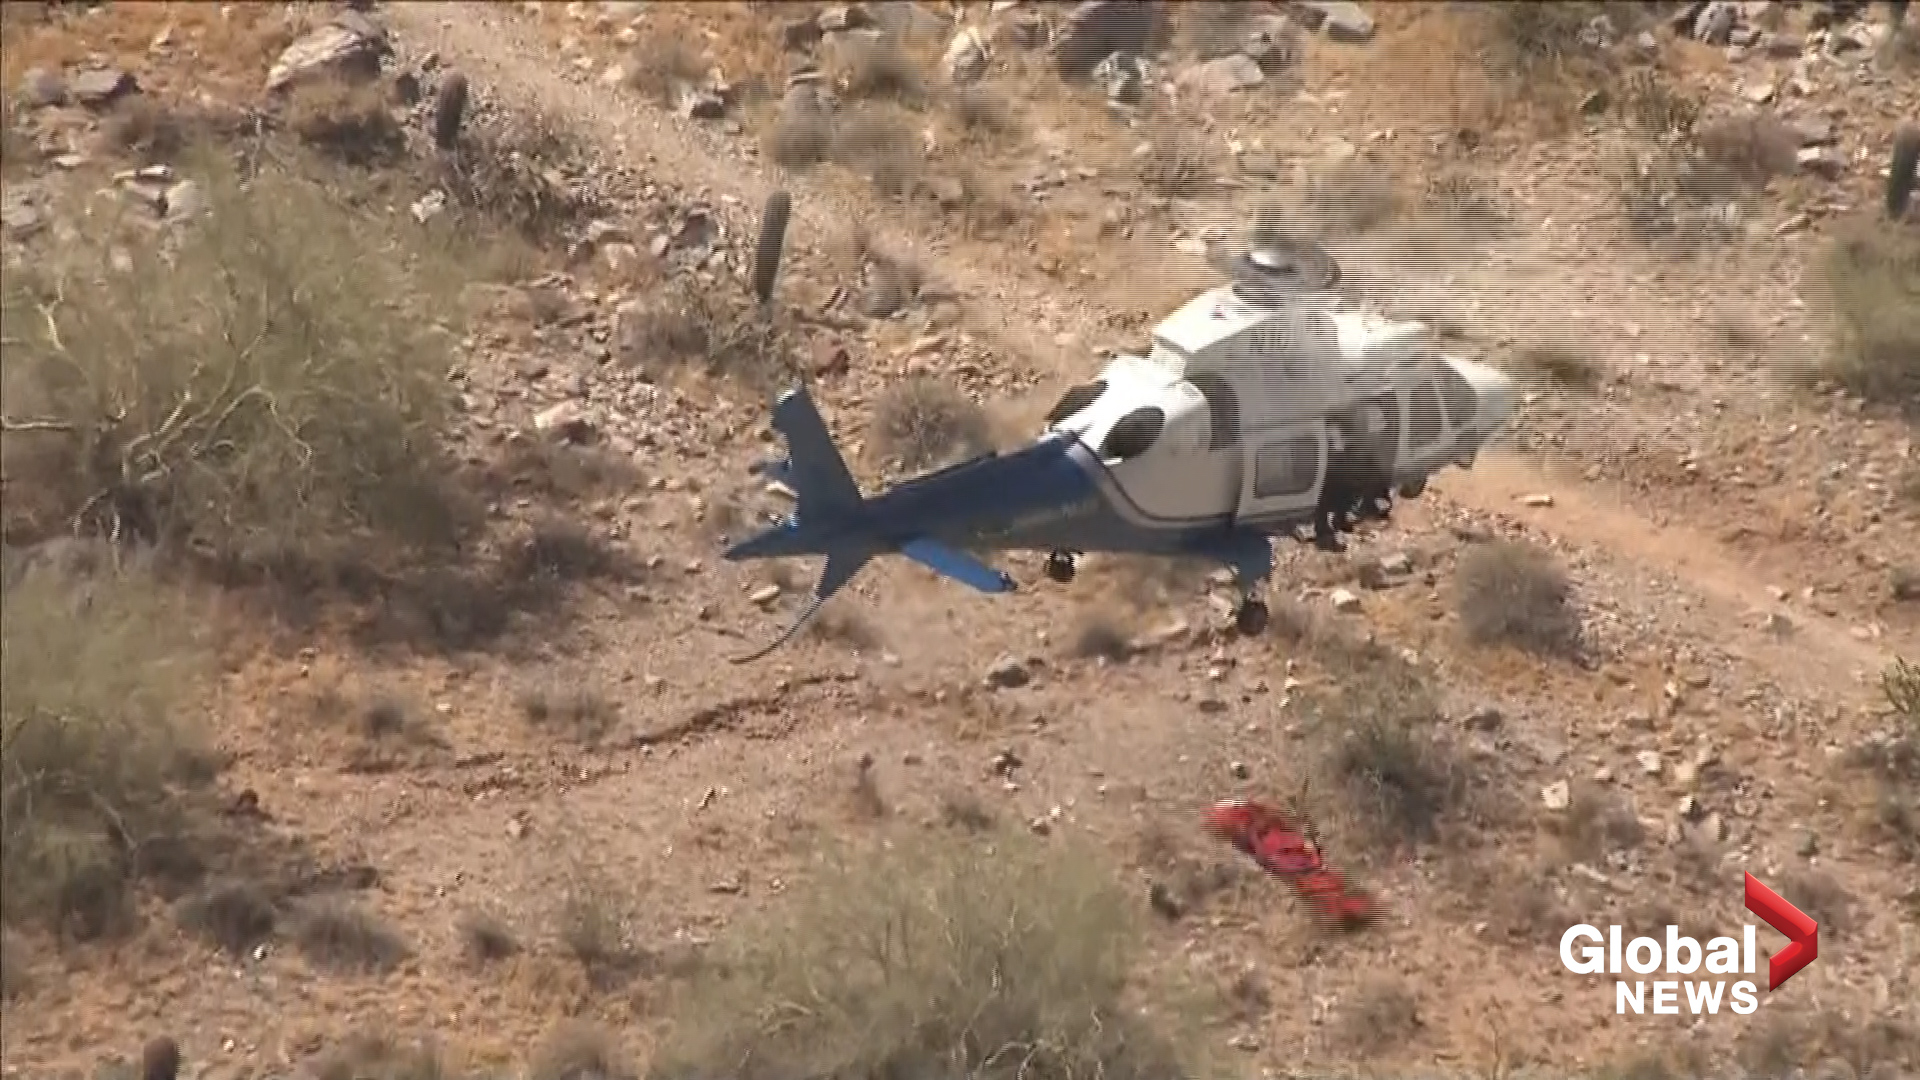 Injured woman, 74, spins wildly at high speed in helicopter rescue basket